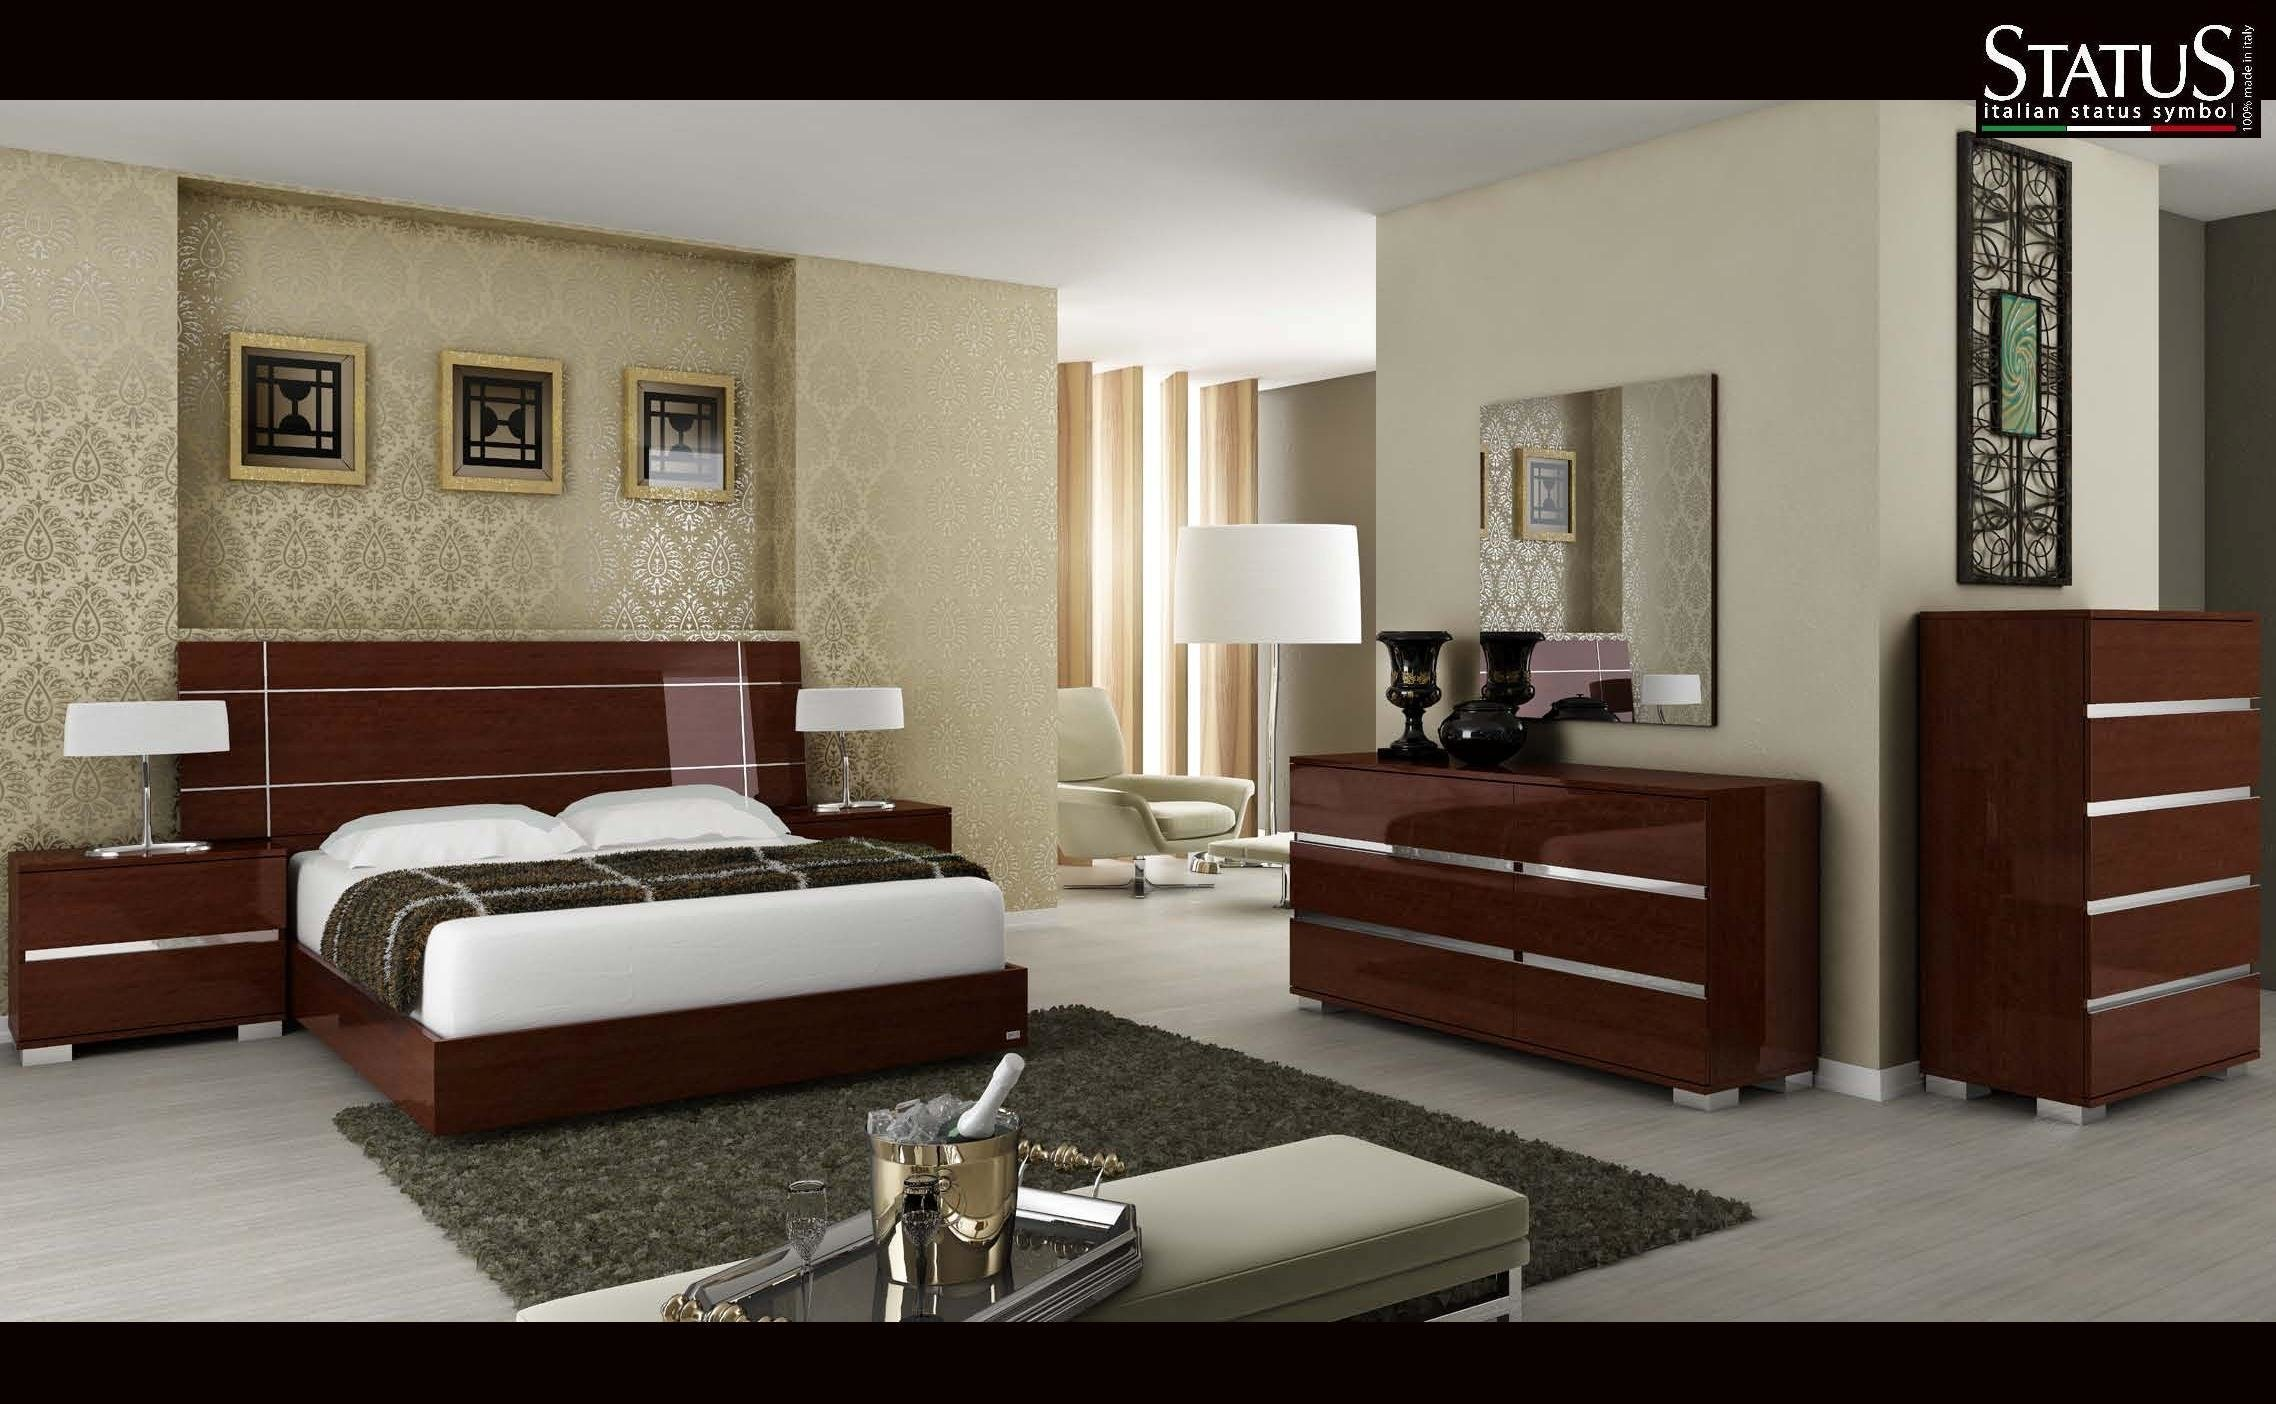 Best Dream King Size Modern Design Bedroom Set Walnut 5 Pc With Pictures